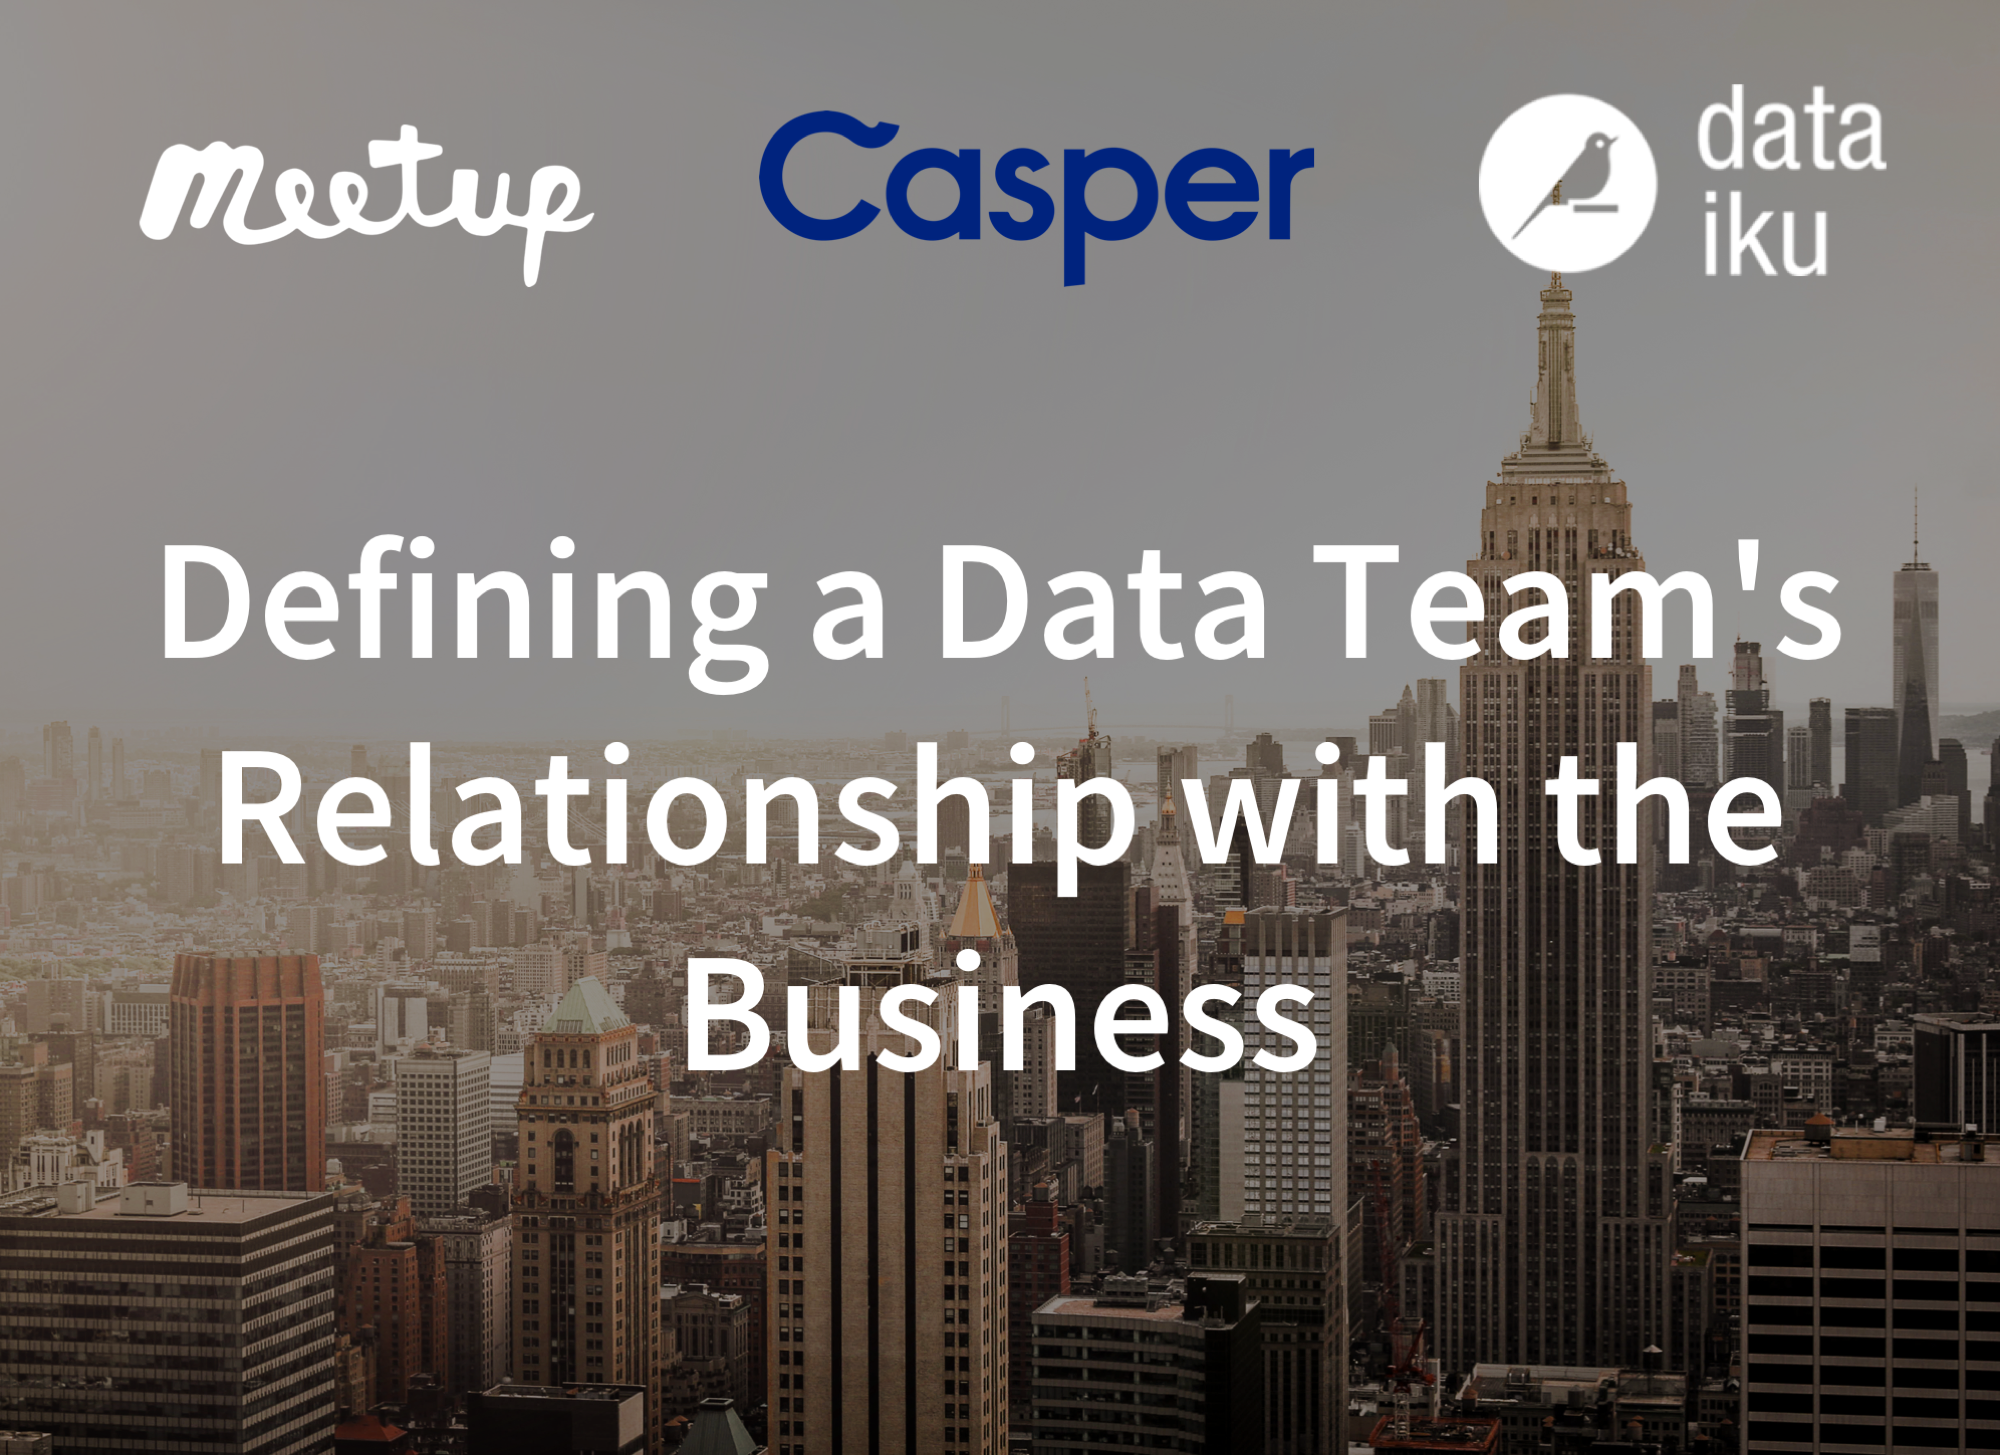 Defining a Data Team's Relationship with the Business